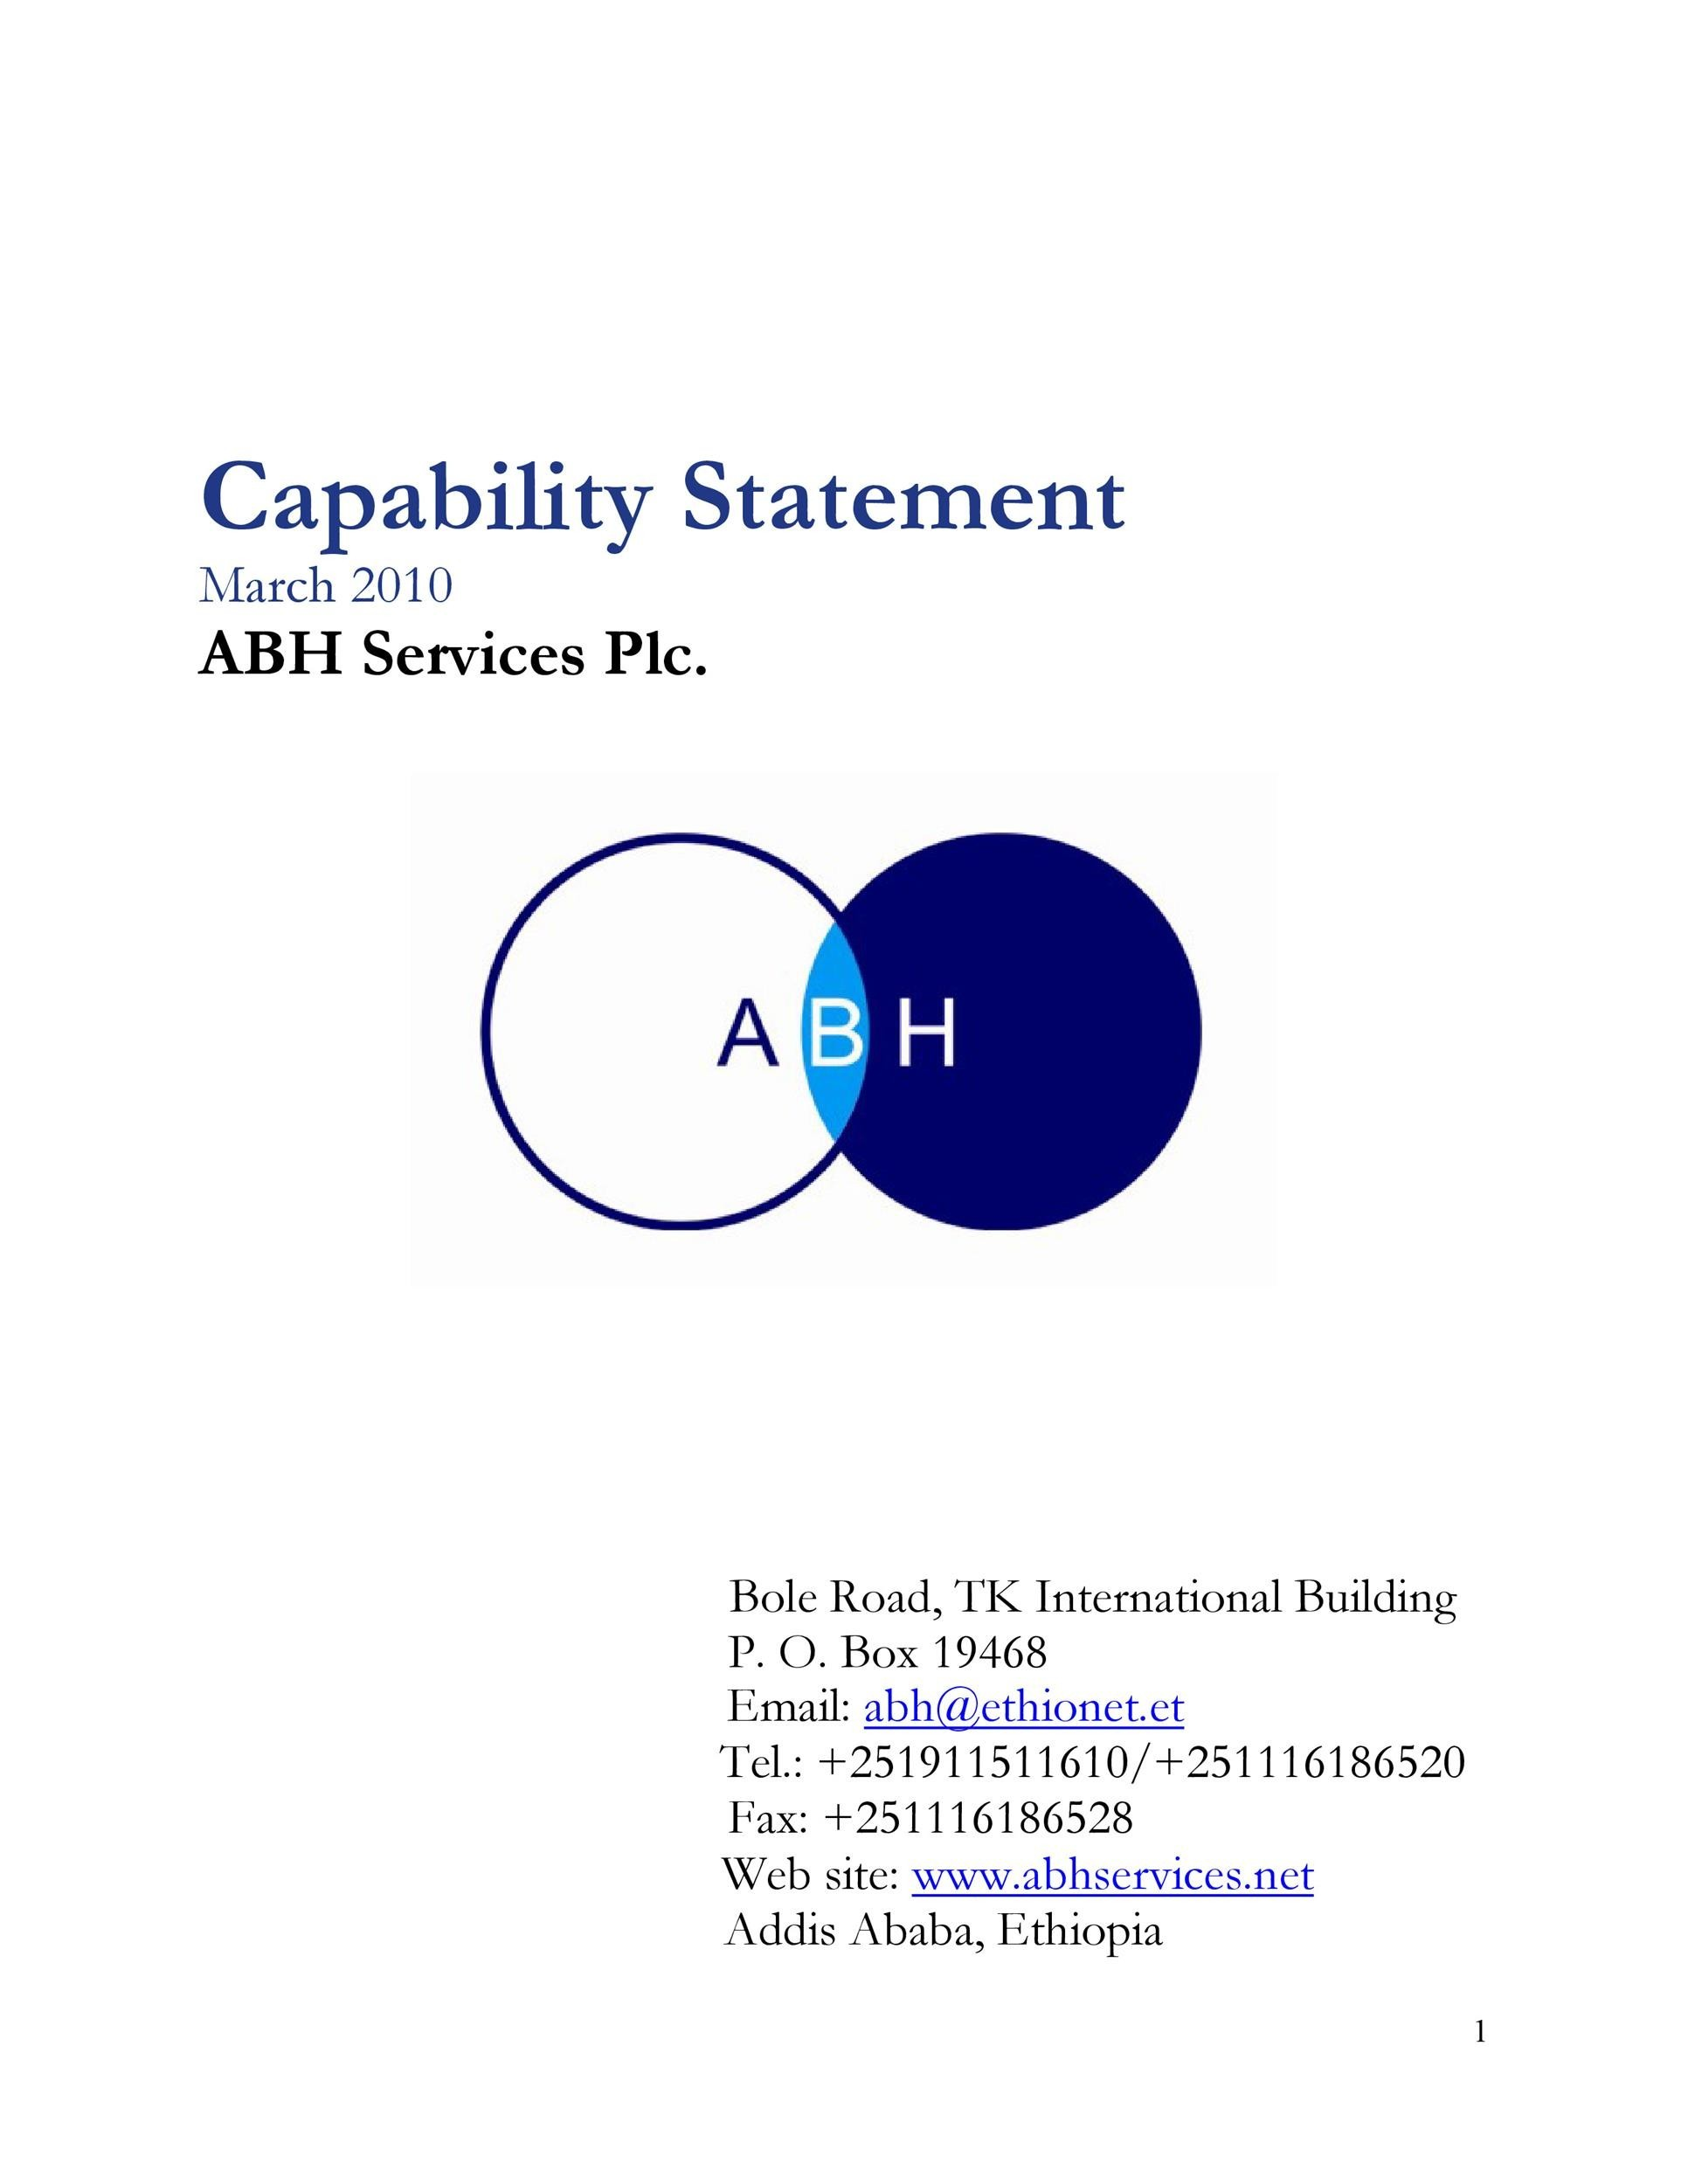 Free capability statement 37